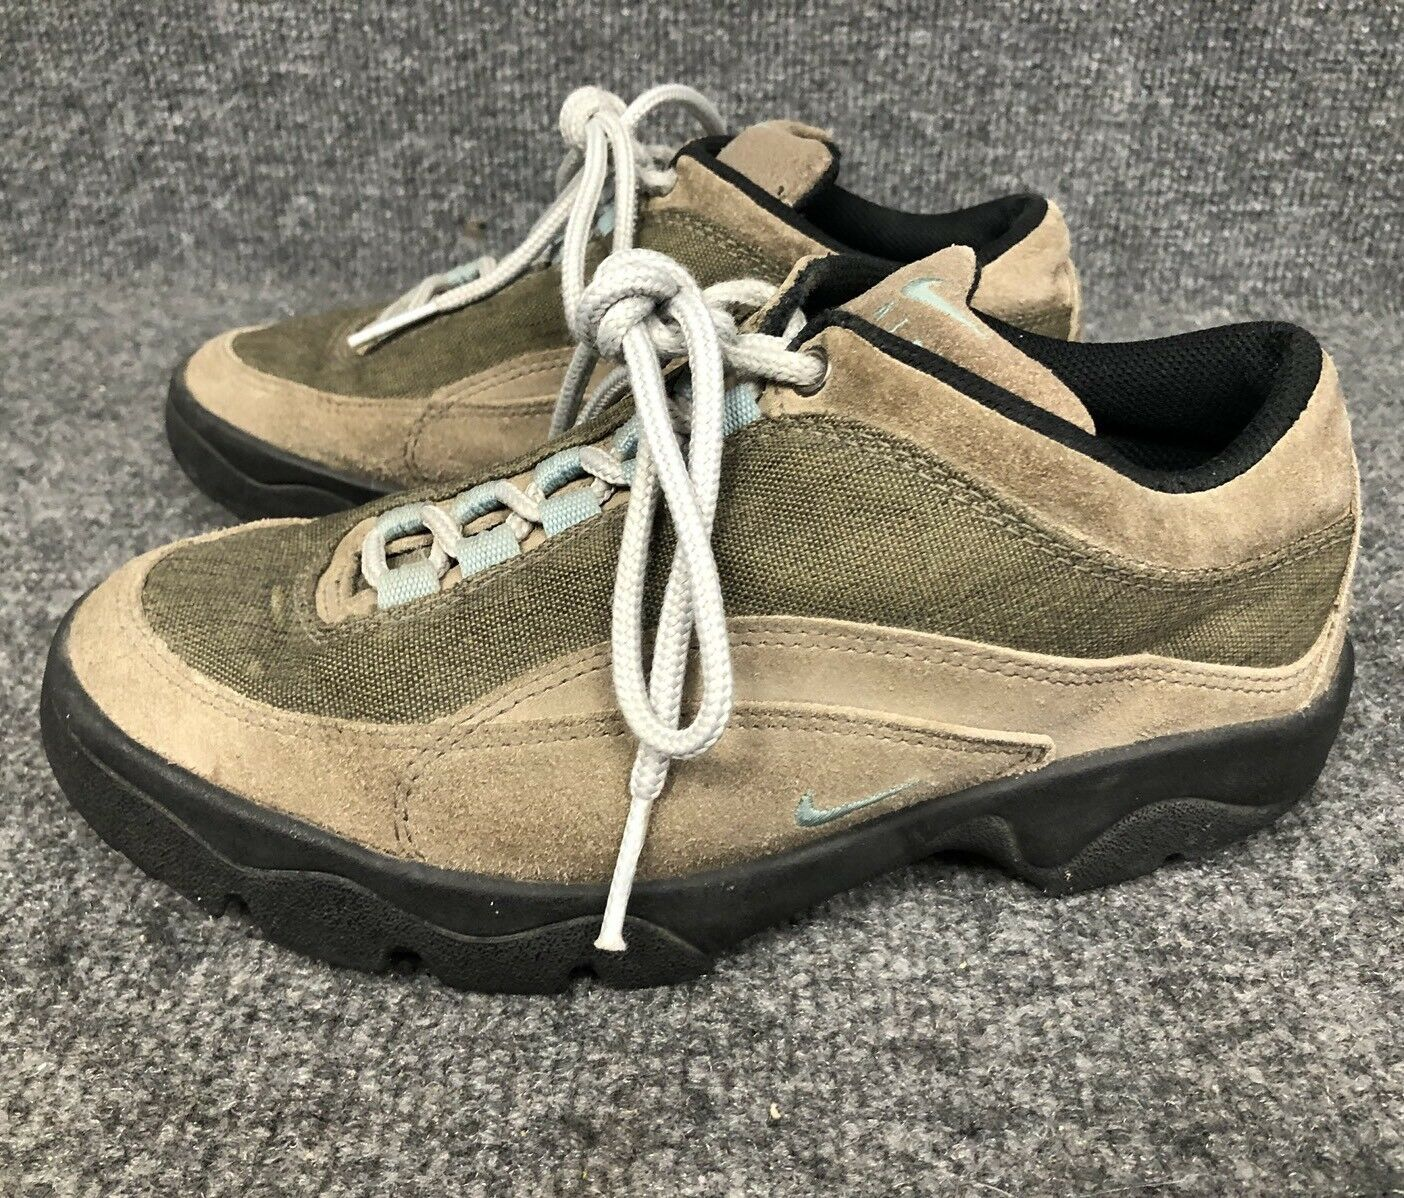 NIKE Womens Sz 6 AIR ACG REGRIND 971101 Leather Suede Hiking/Trail/Walking Shoes Wild casual shoes